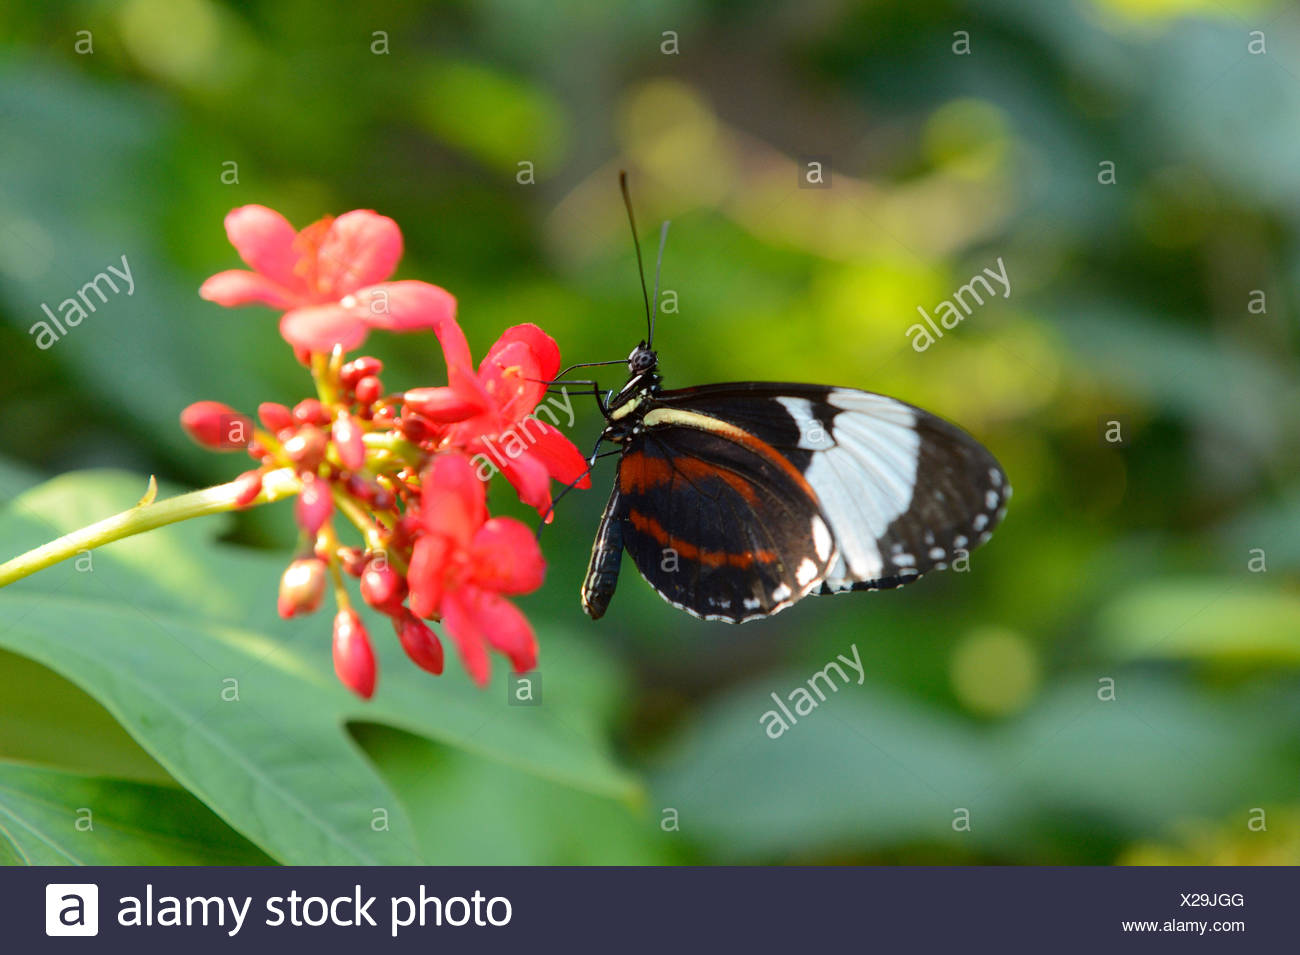 Cydno Longwing  (Heliconius cydno), sucking nectar from red flowers - Stock Image